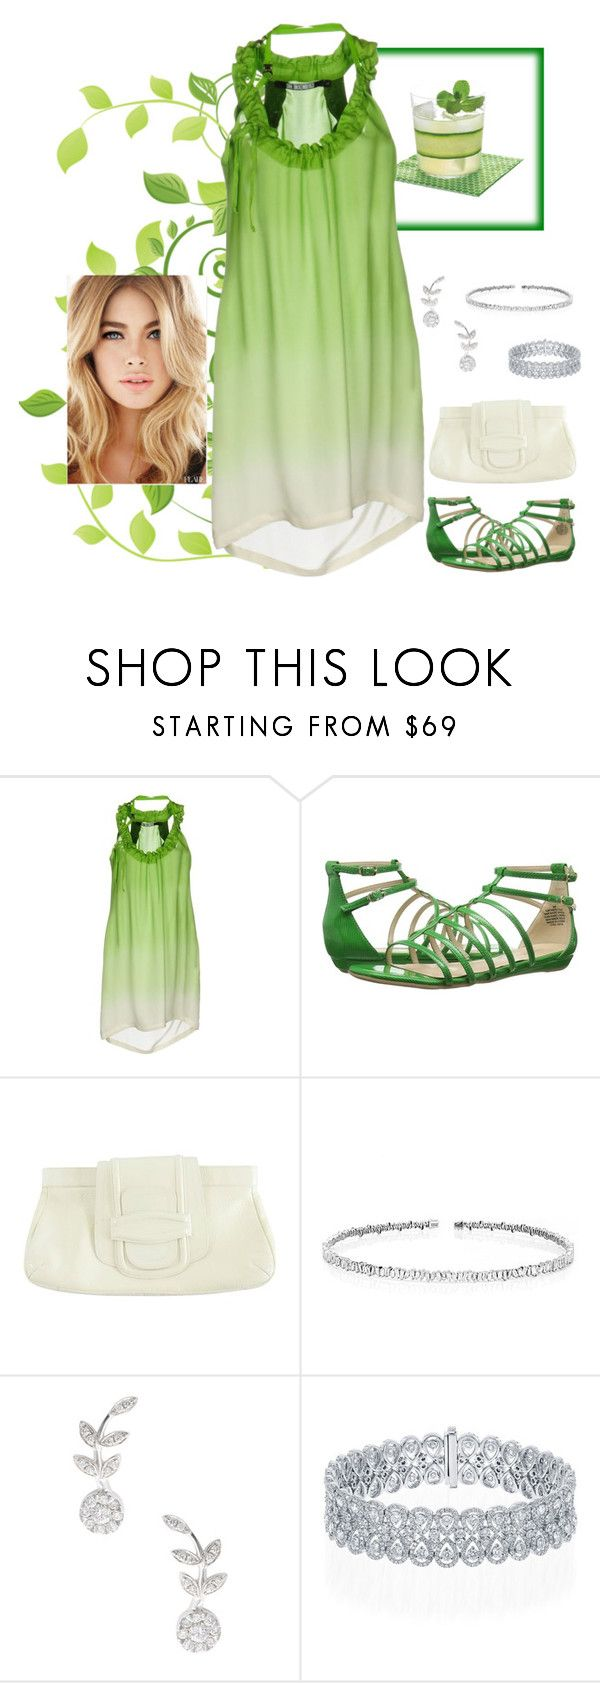 """""""Lady in Lime"""" by andrea-kaye-nowak ❤ liked on Polyvore featuring Dirk Bikkembergs, Nine West, Oscar de la Renta, Suzanne Kalan and Rina Limor"""